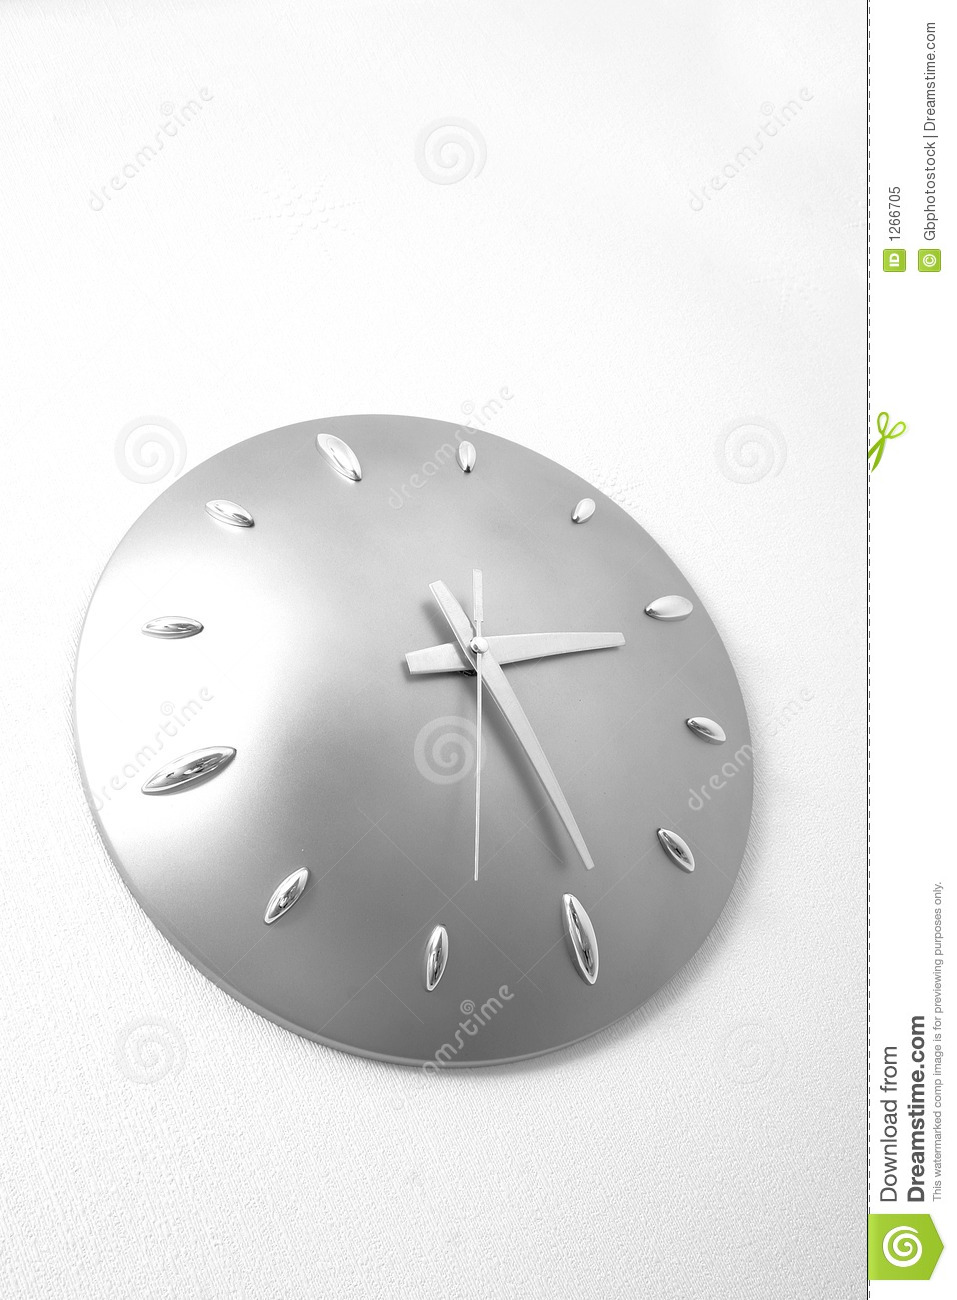 Bathroom Clock. Bathroom Clock Royalty Free Stock Photo   Image  1266705